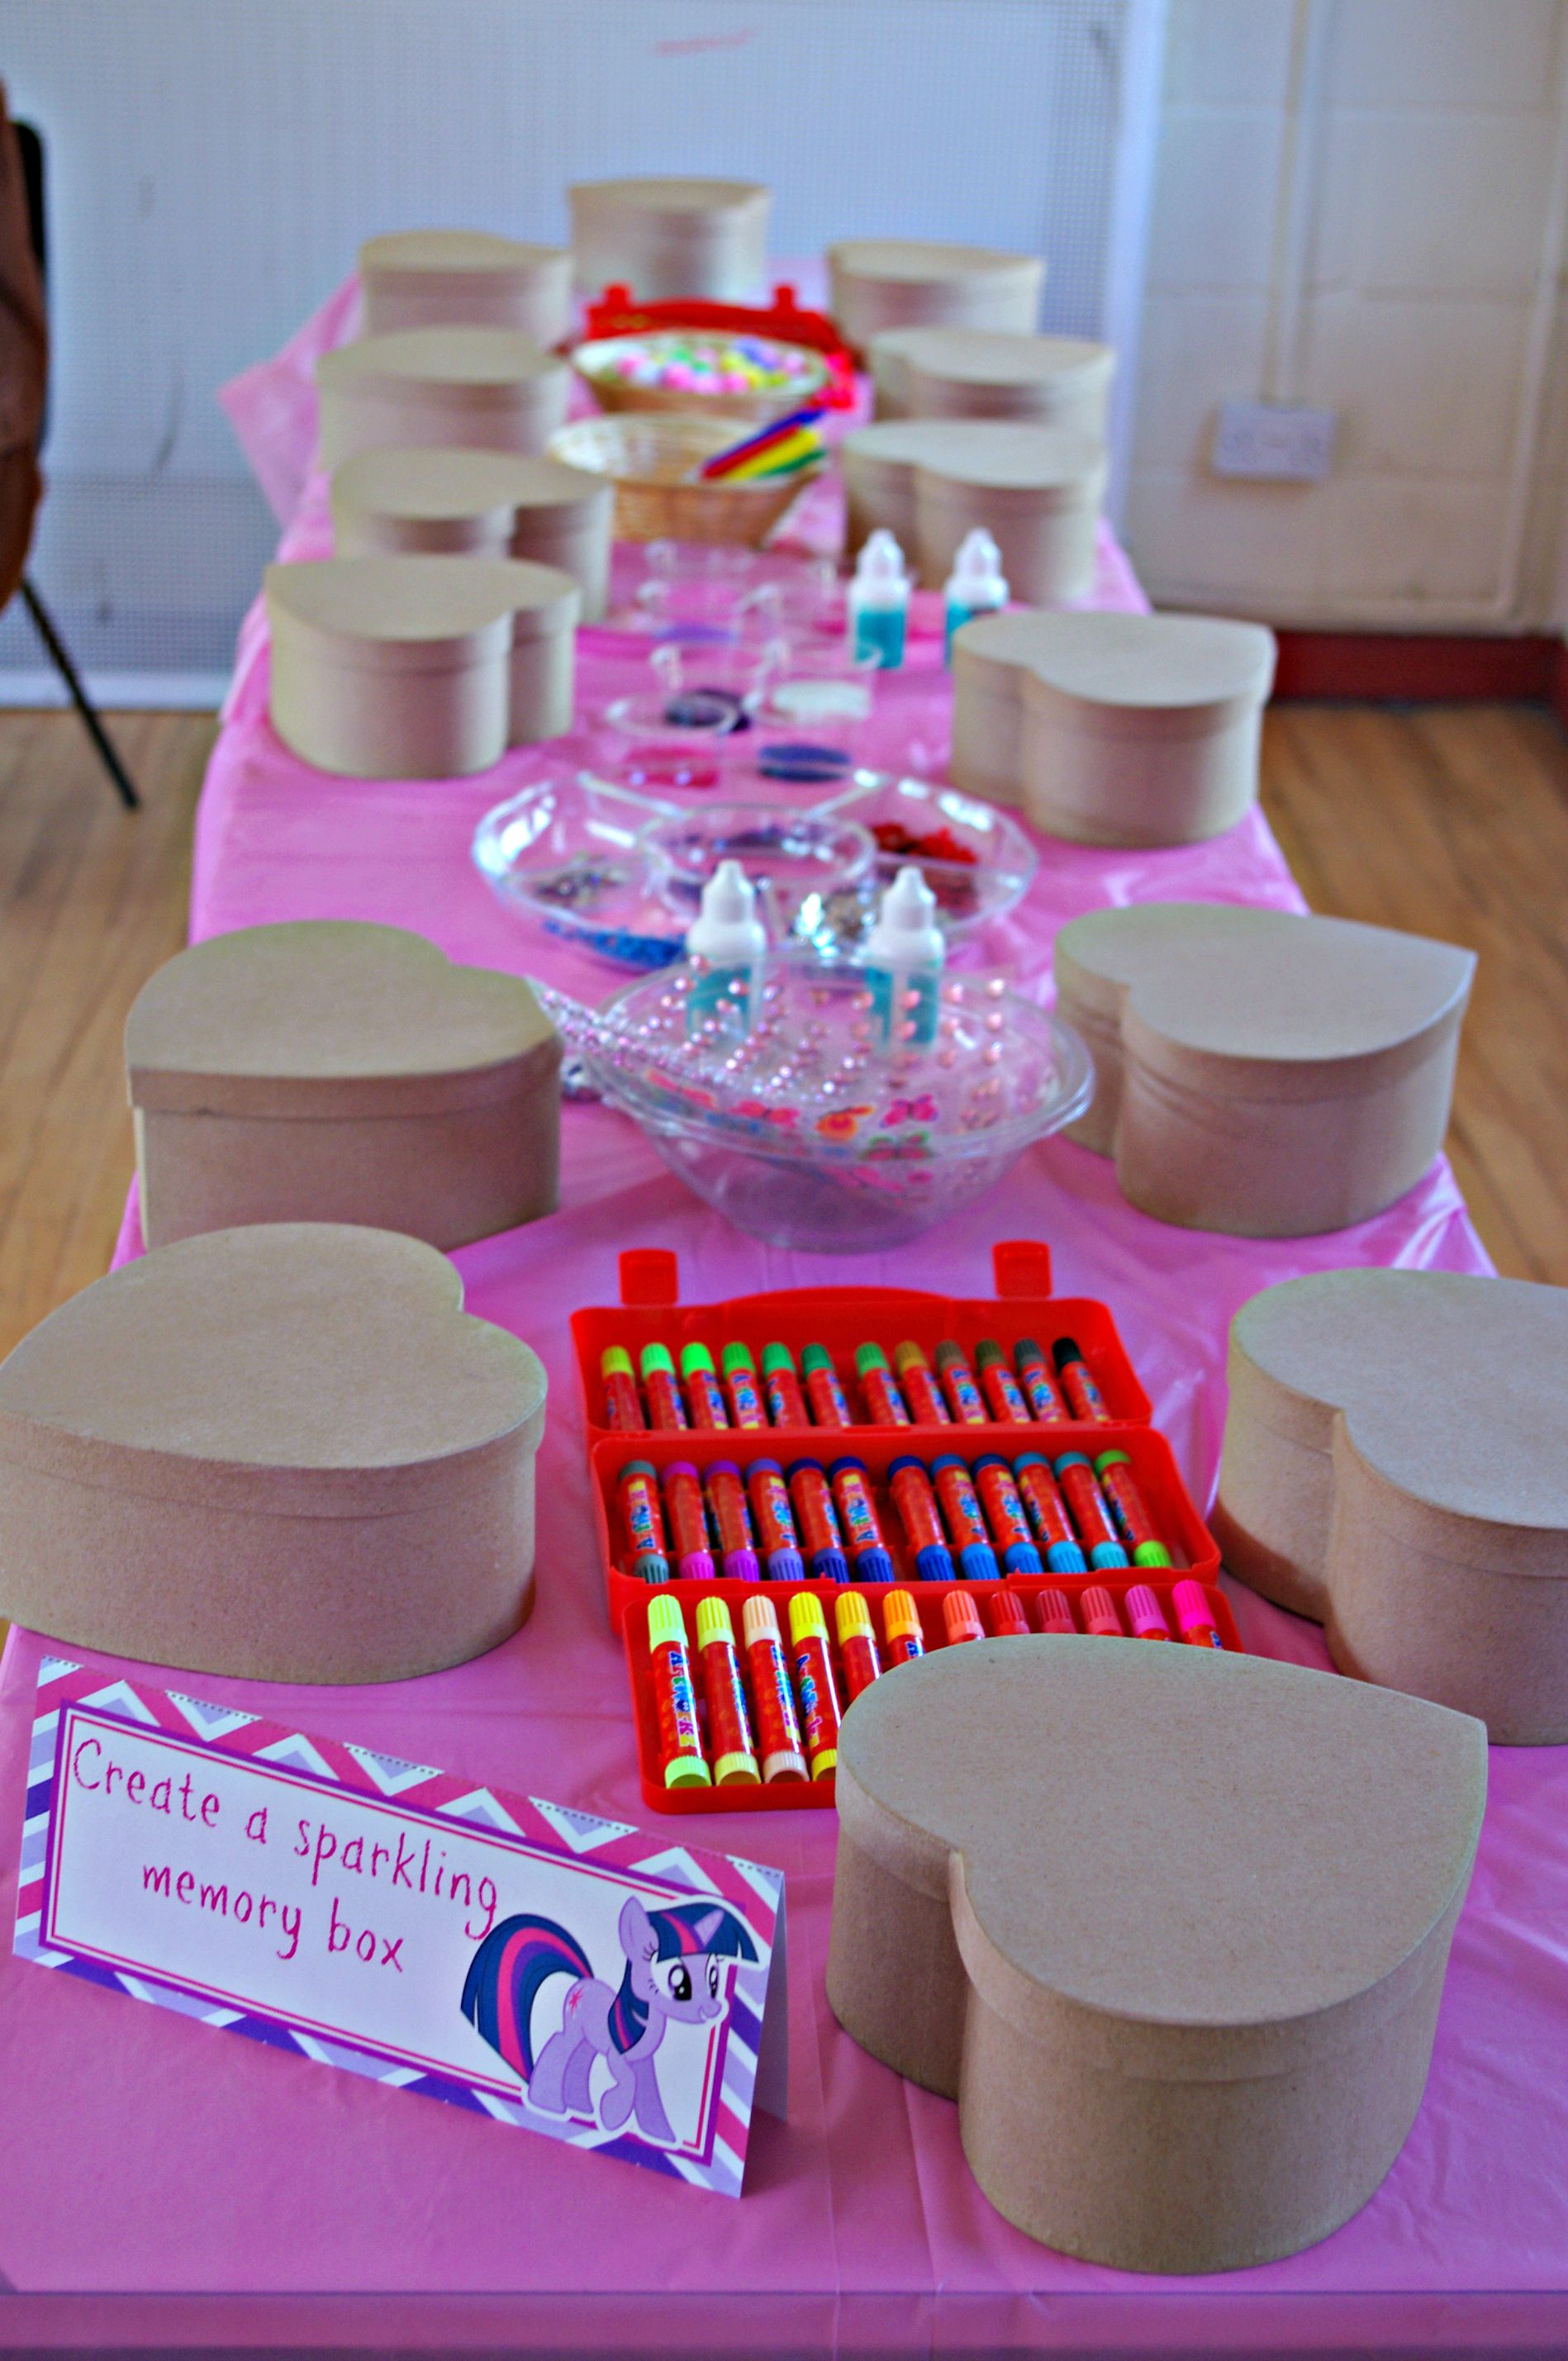 baking birthday party activities ; 4c823ac5bdb4964a403b62d8920ee087